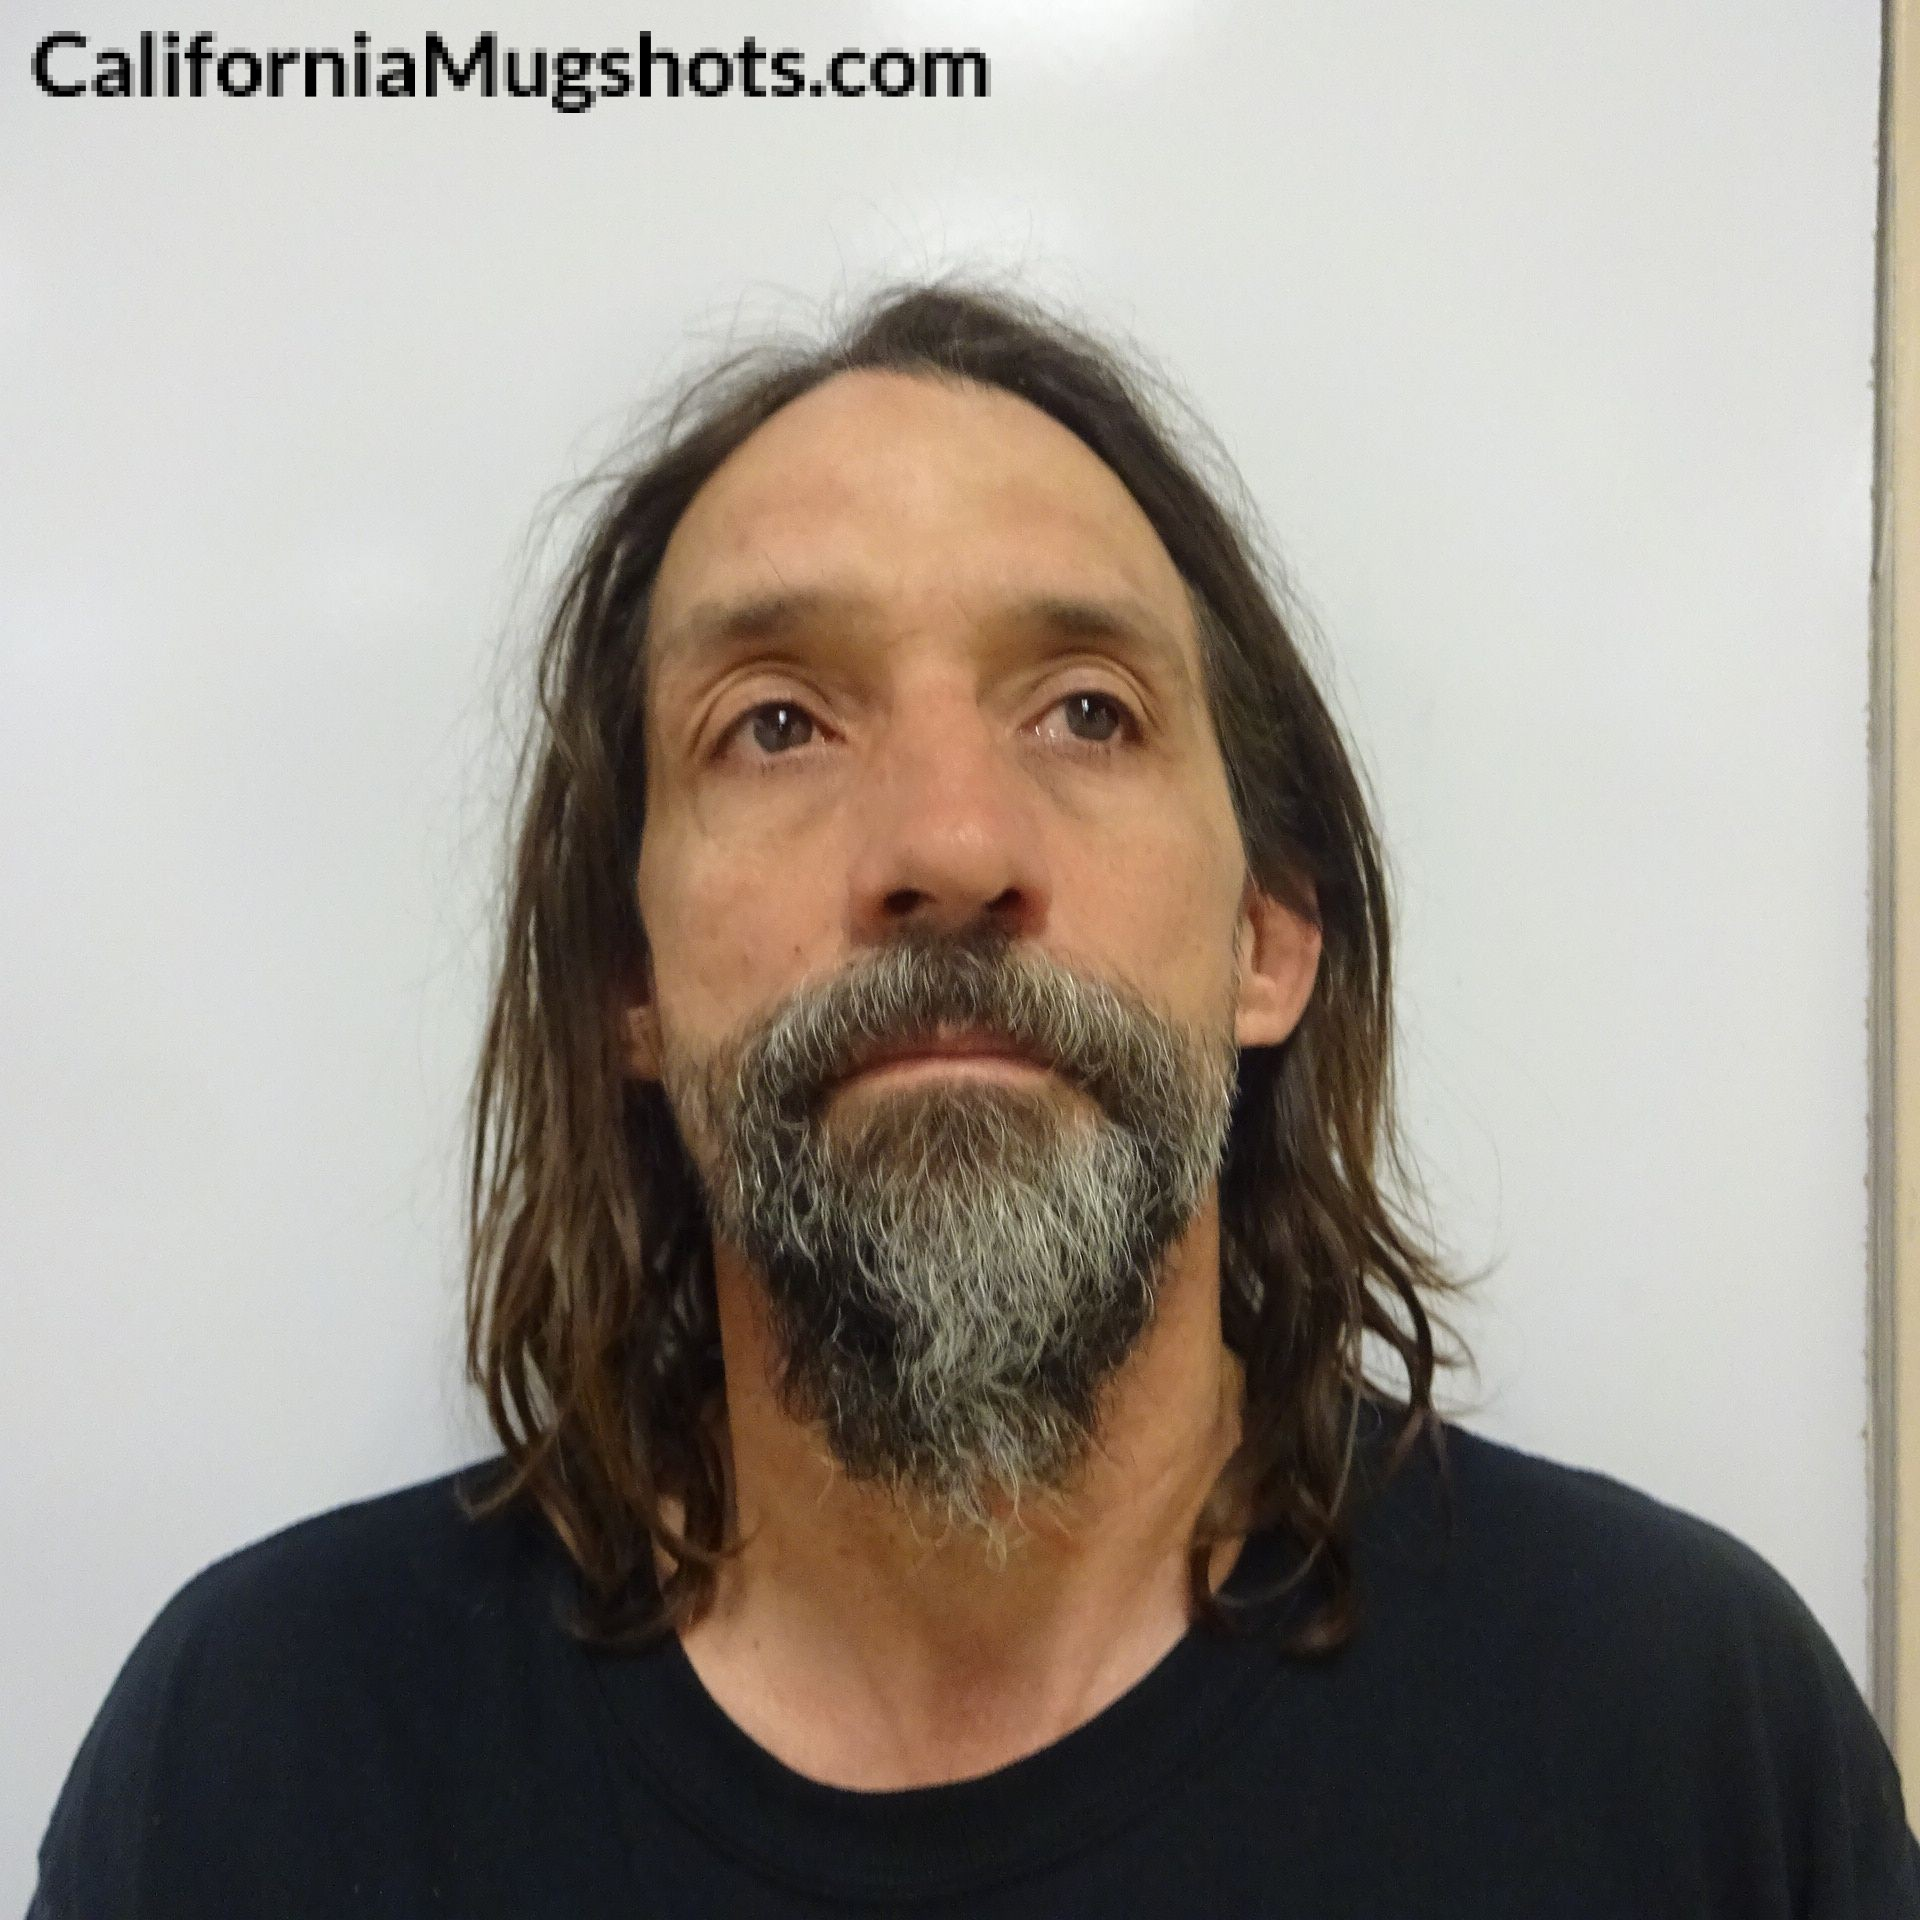 Keith Richard Gluck arrested in Lake County,CA